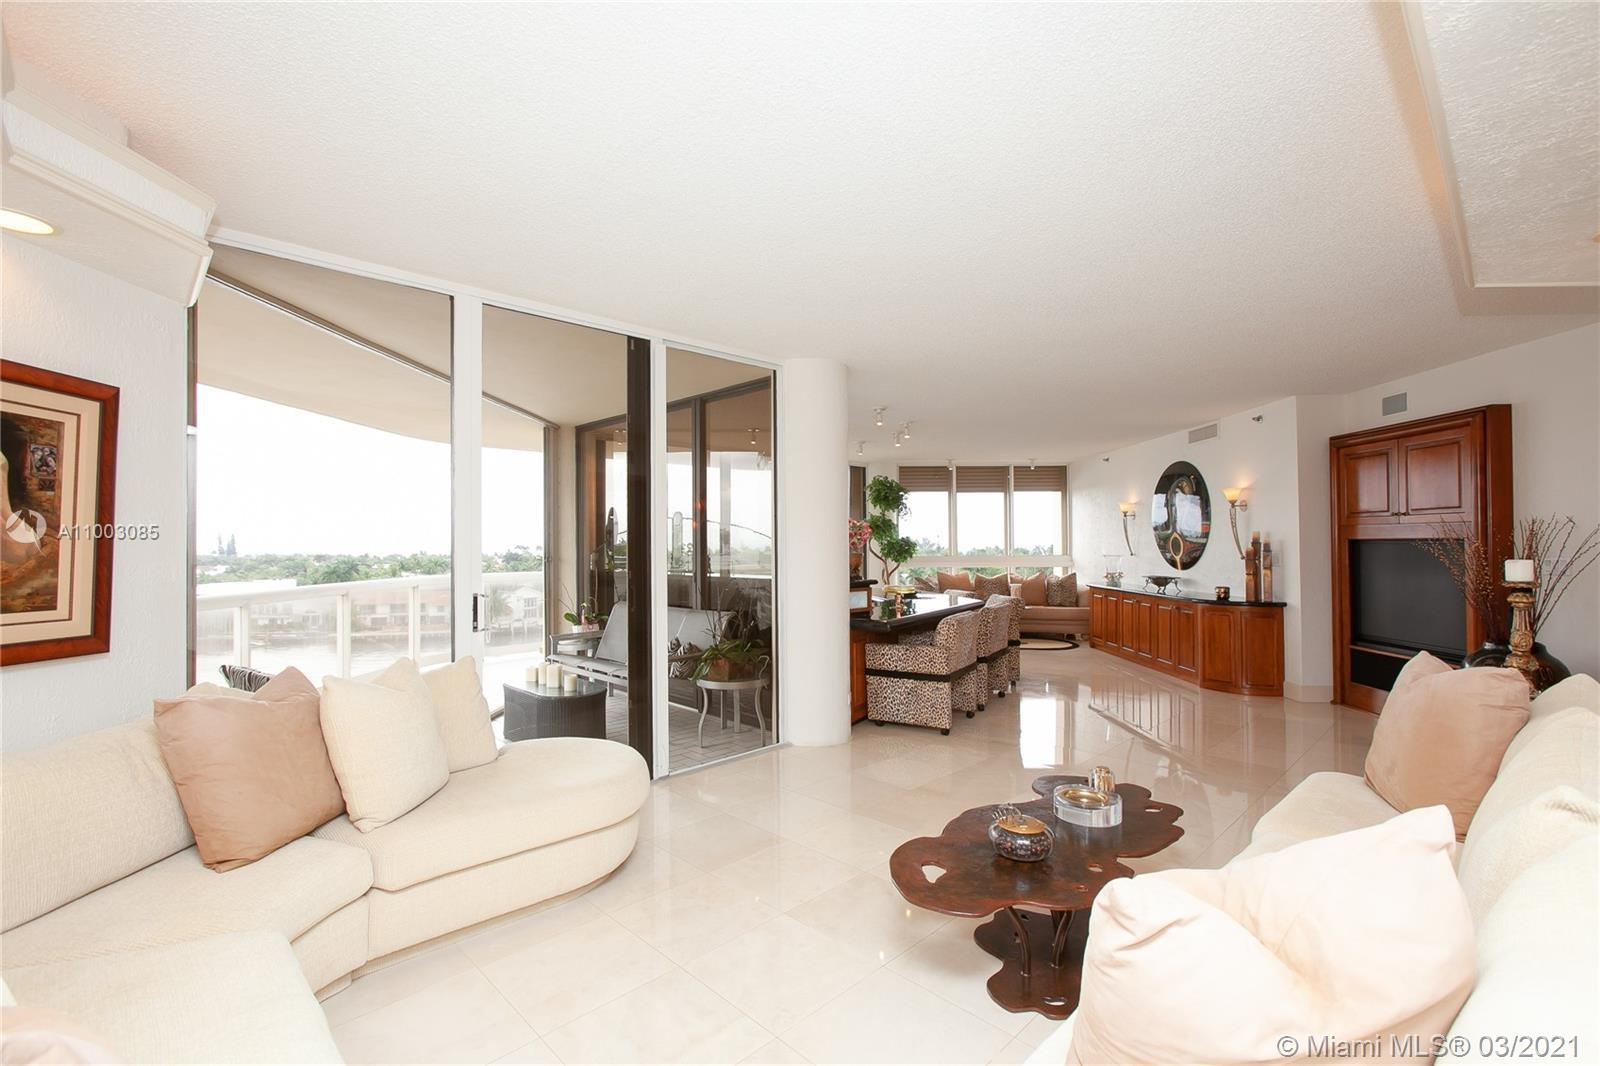 The Most Fabulous NE Corner in Terraces of Turnberry with a Cabana Included! This Spacious 1936 SF R